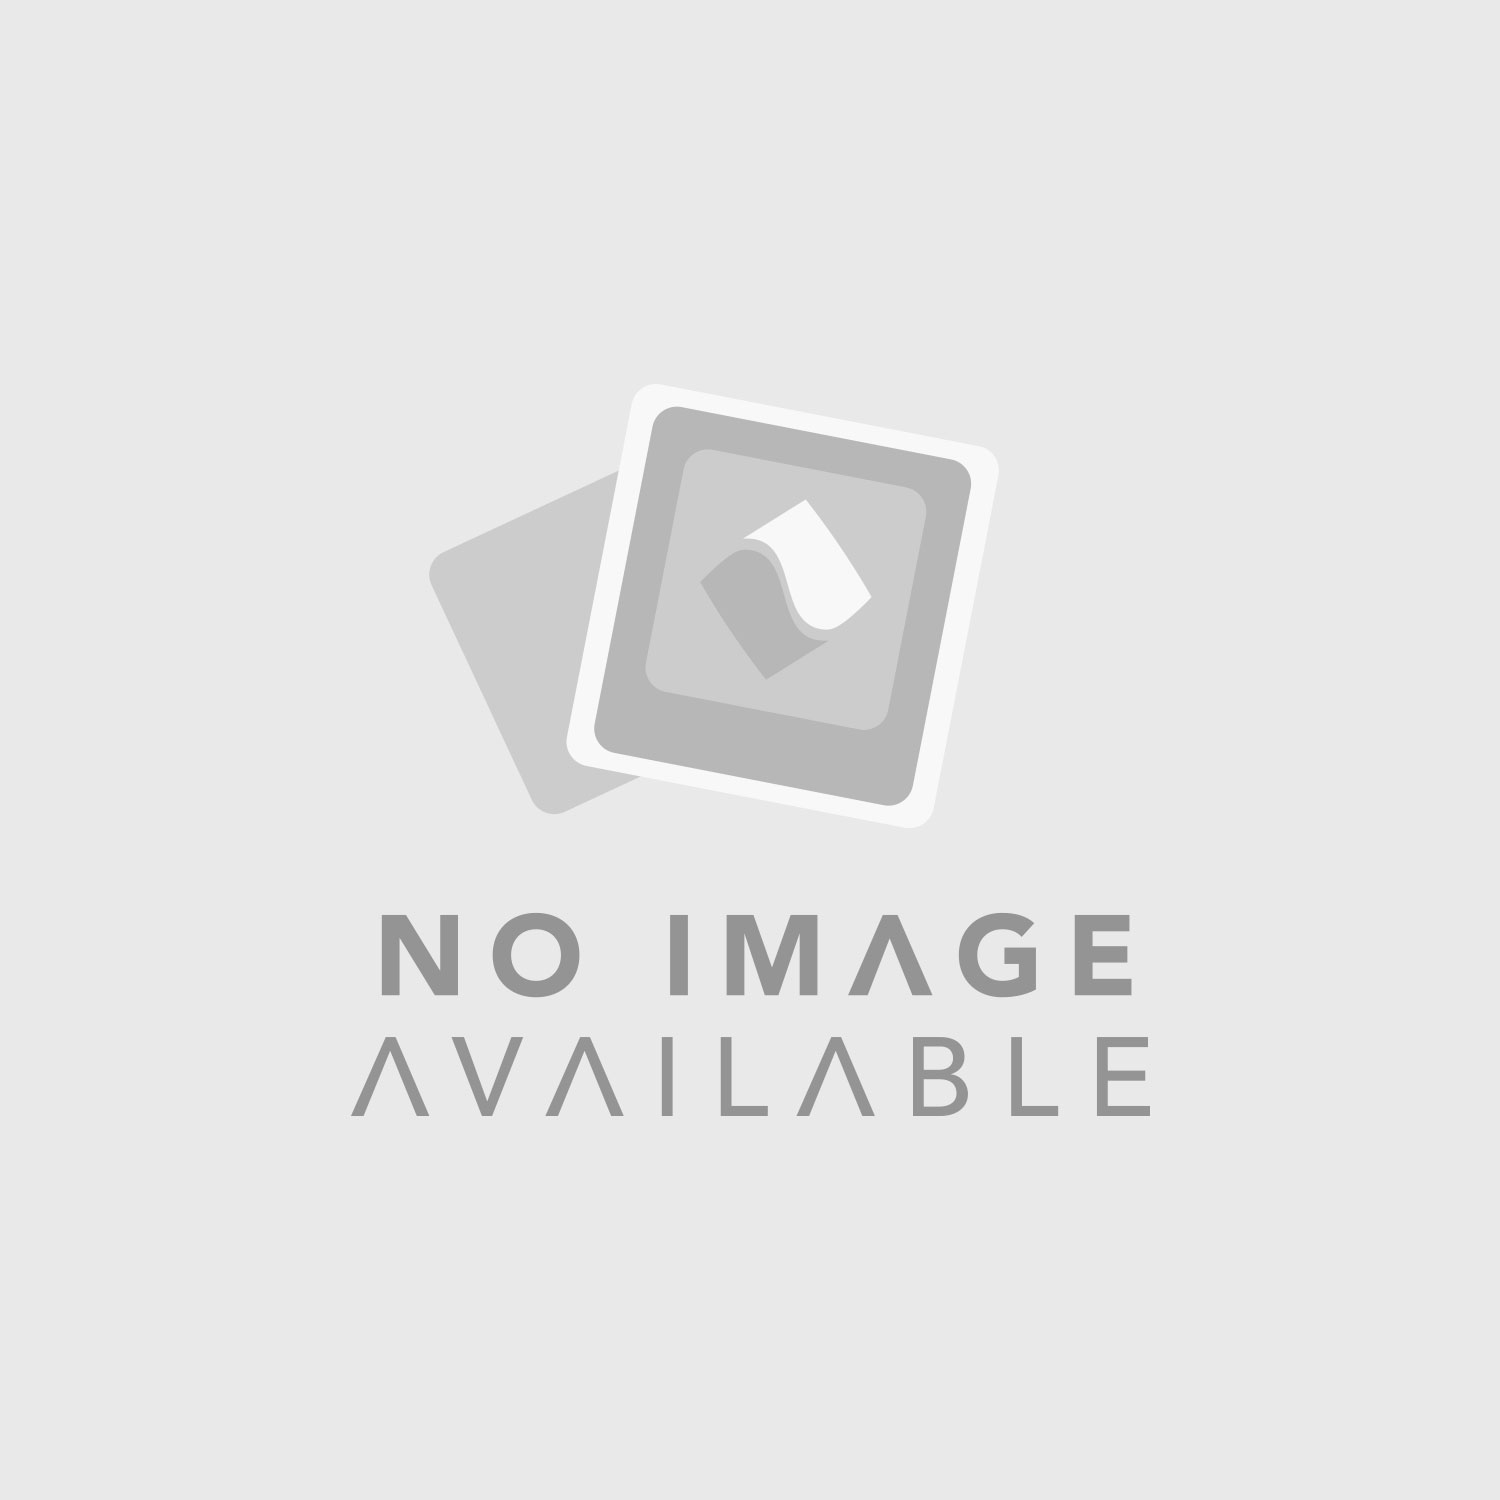 RDL DB-XLR2 XLR 3-Pin Female & 3-Pin Male (Black)